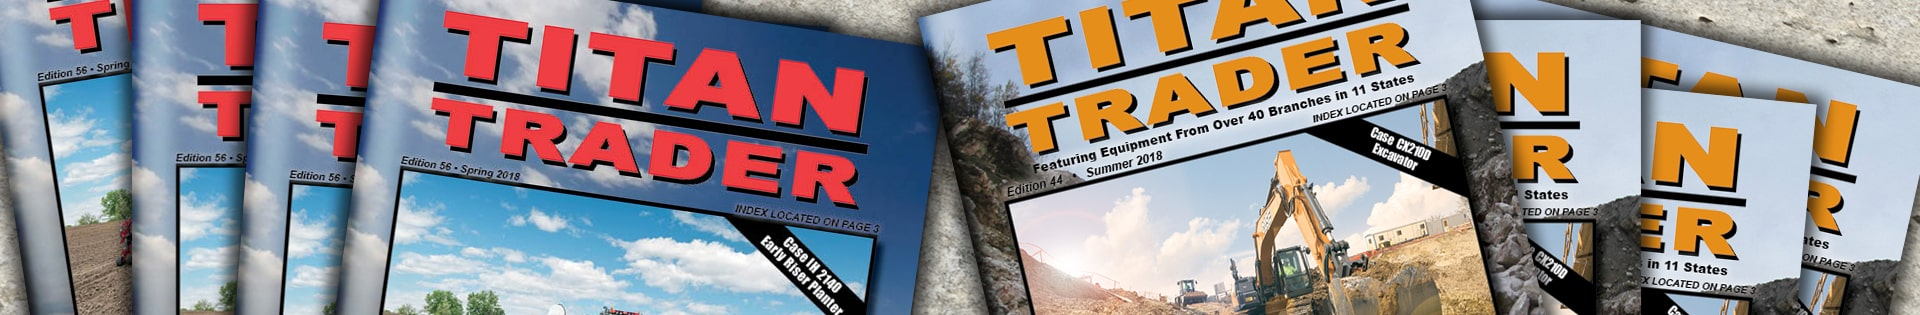 Construction Titan Trader magazines and Farm Equipment Titan Traders